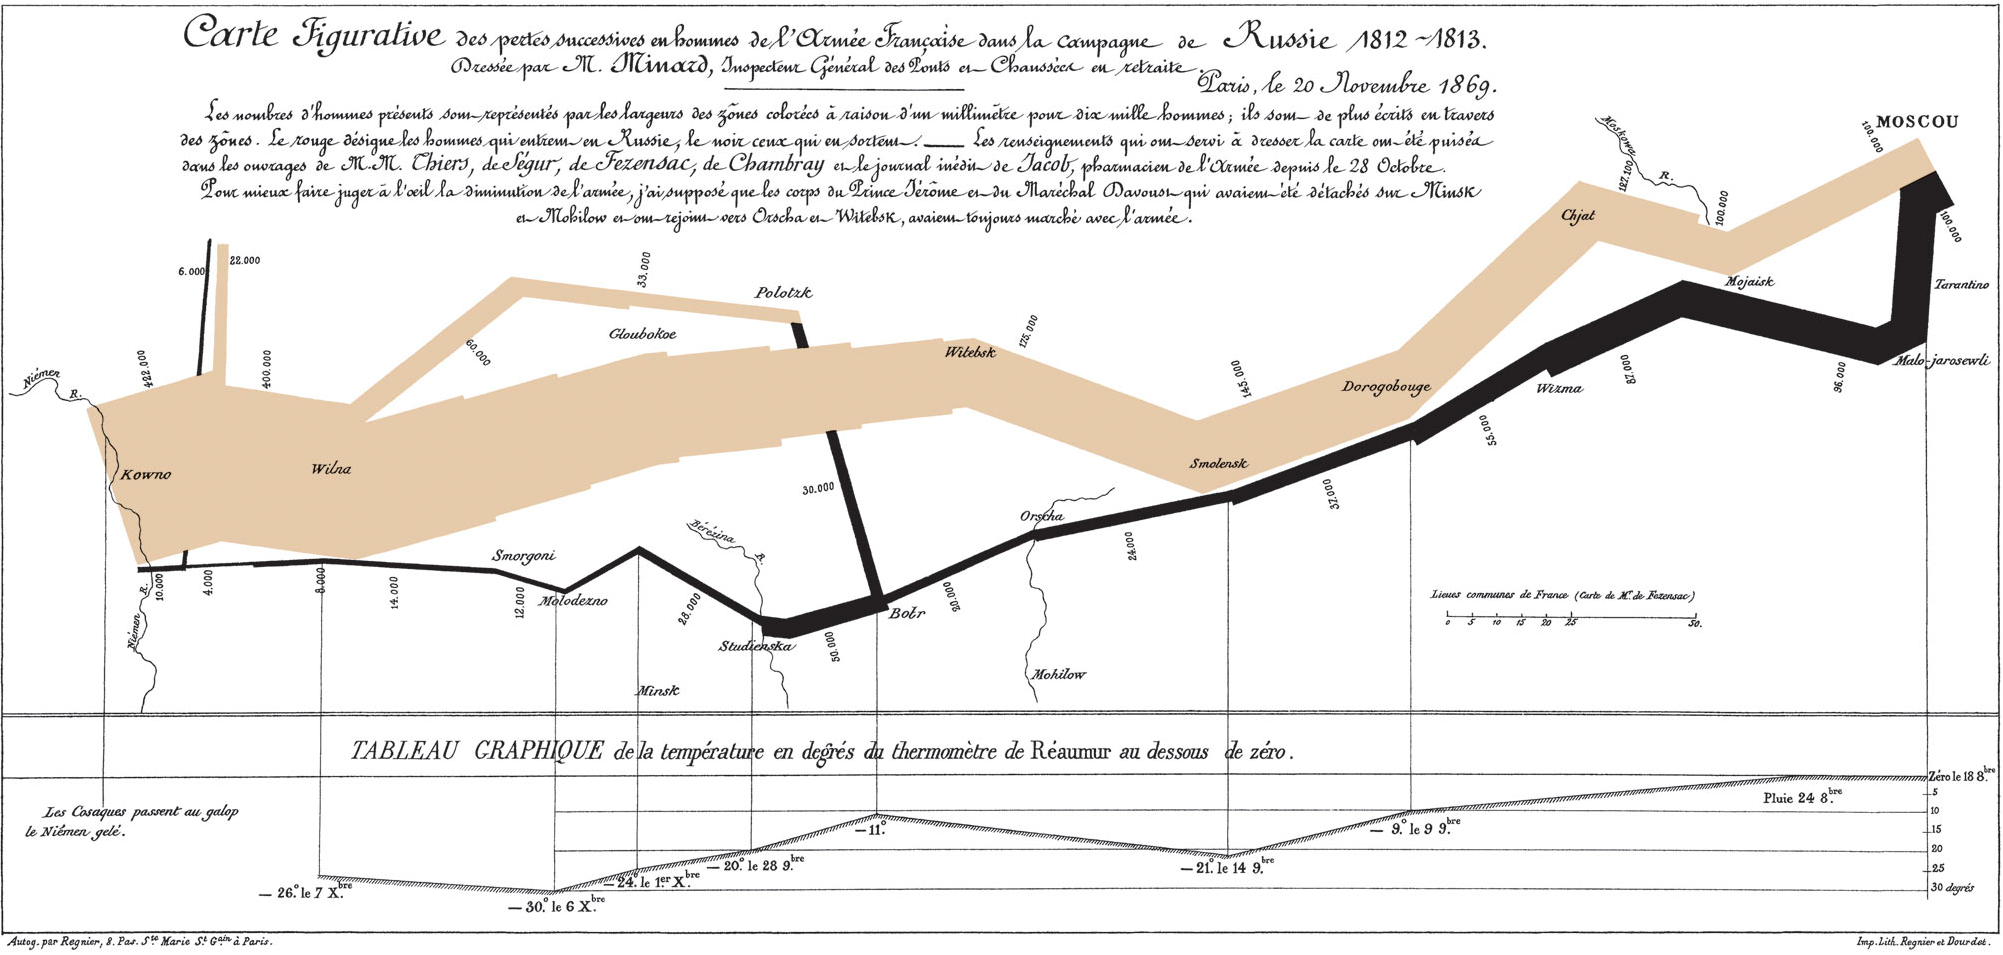 Minard Map of Napoleon's March by Charles Joseph Minard